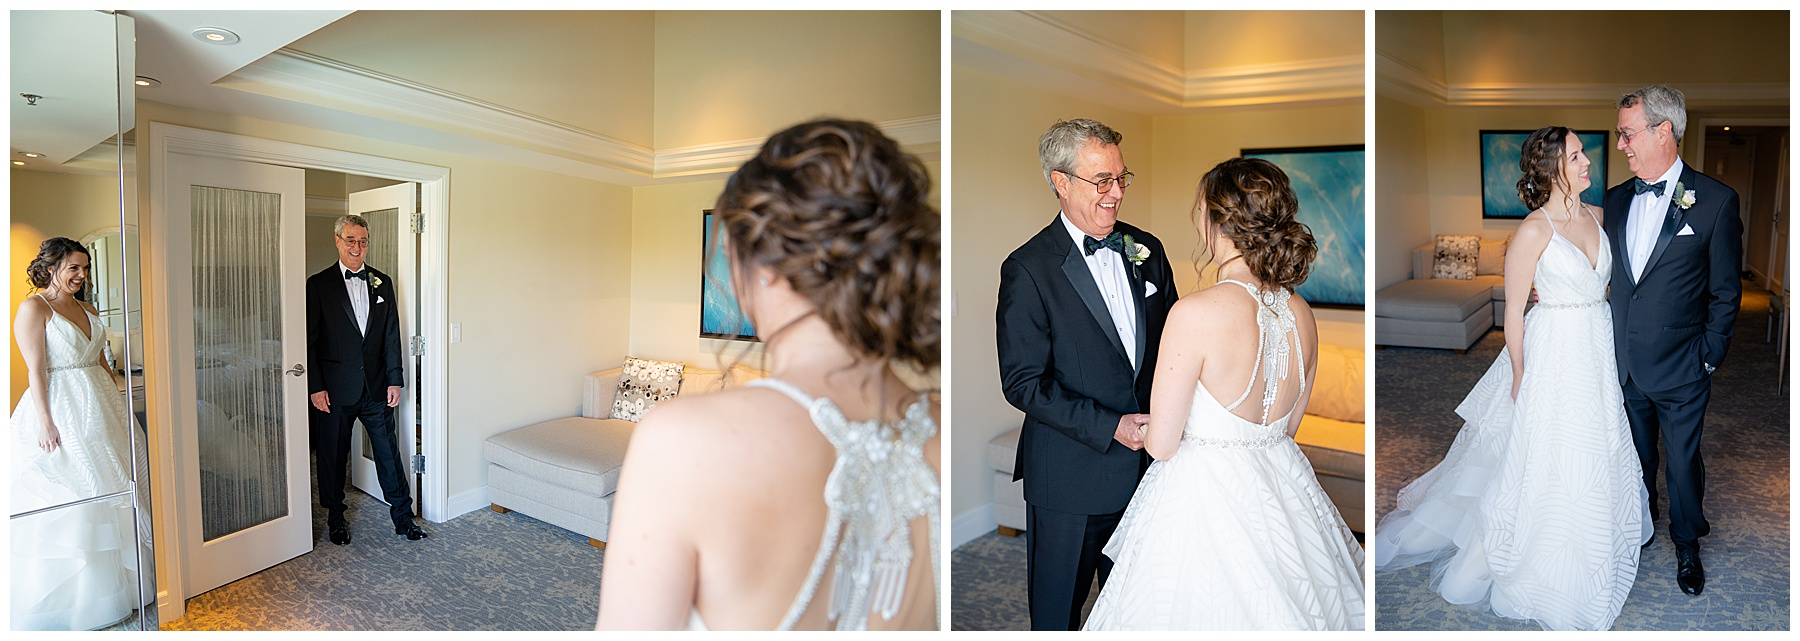 father and daughter first look talega golf club weddings